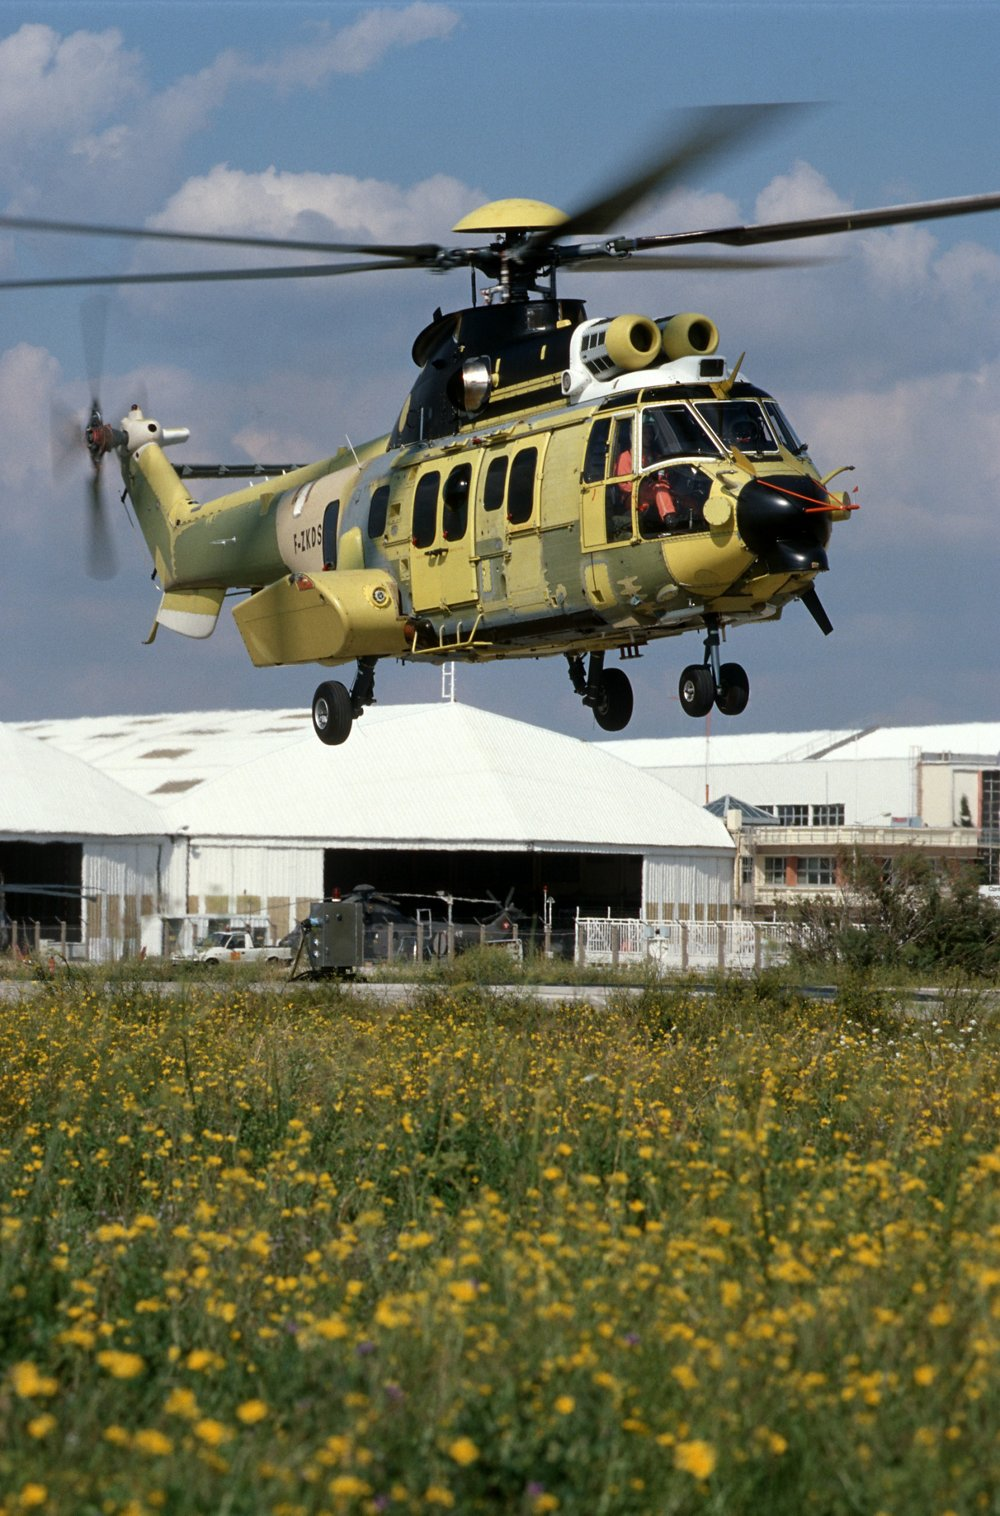 The first flight of an EC725 helicopter with the Makila 2A engine was performed from Marignane, France in 2002.